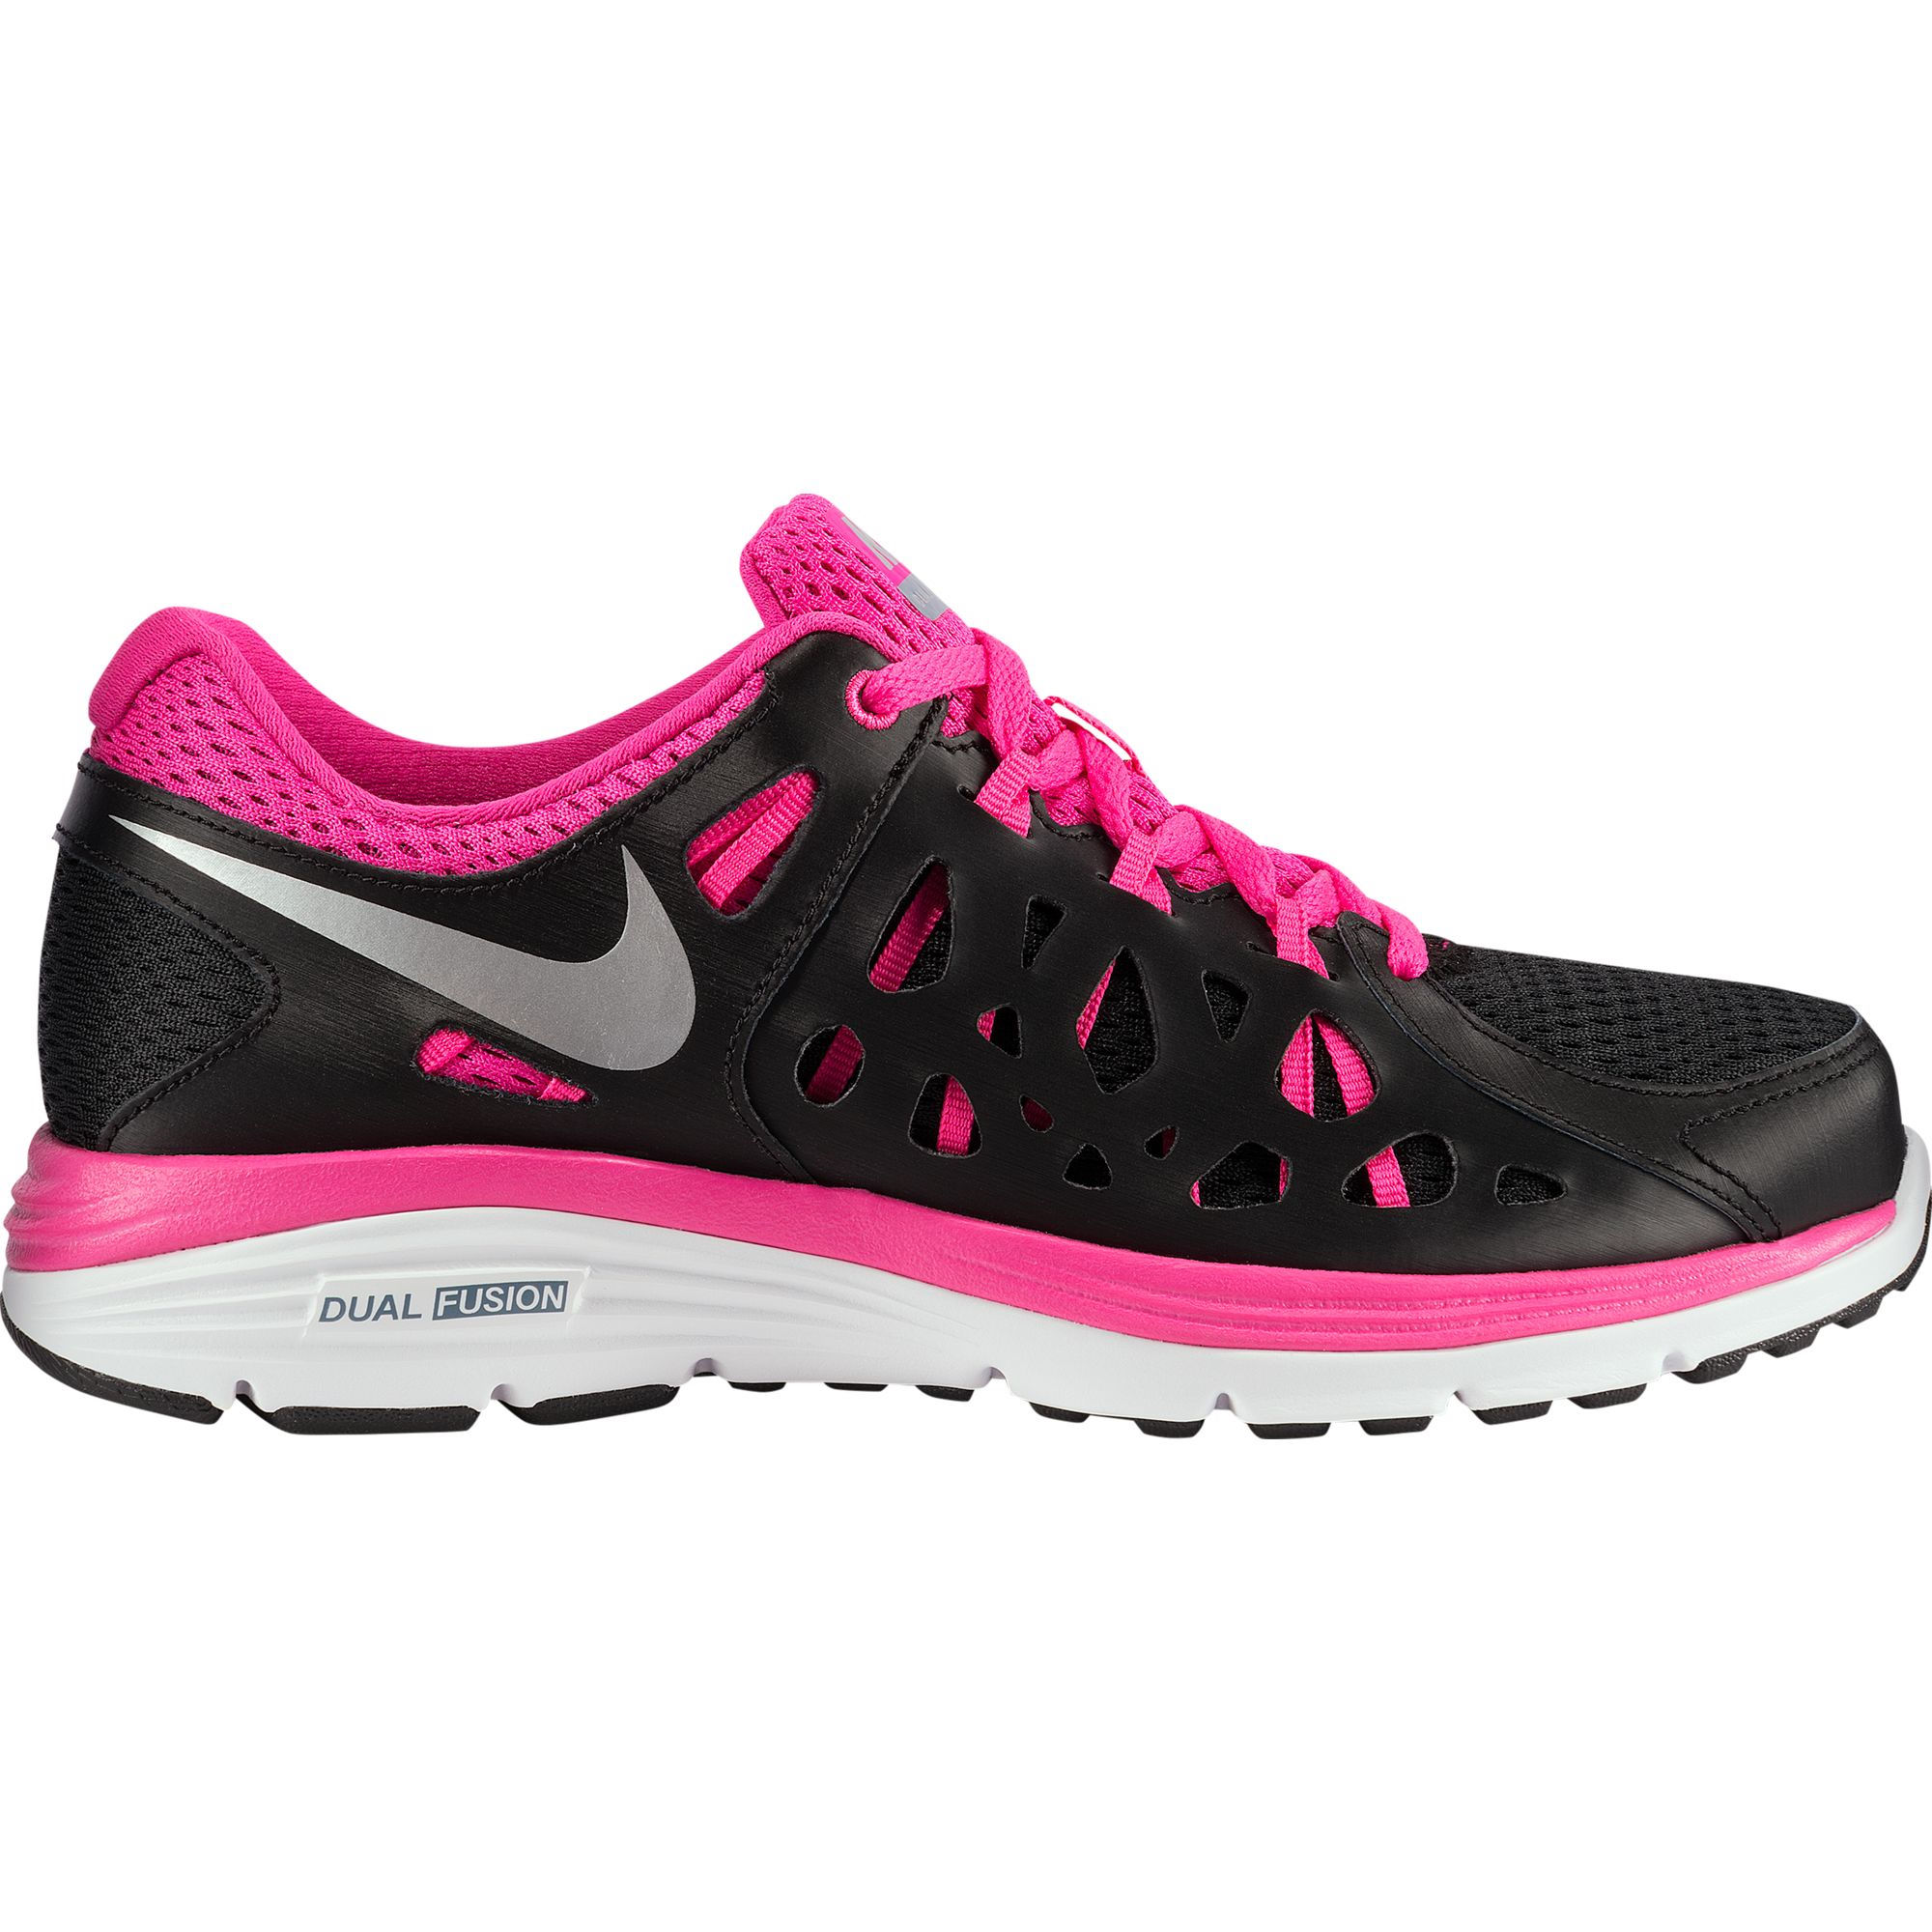 Nike Dual Fusion St 2 Running Shoes Review Middot Gold Women 39 S